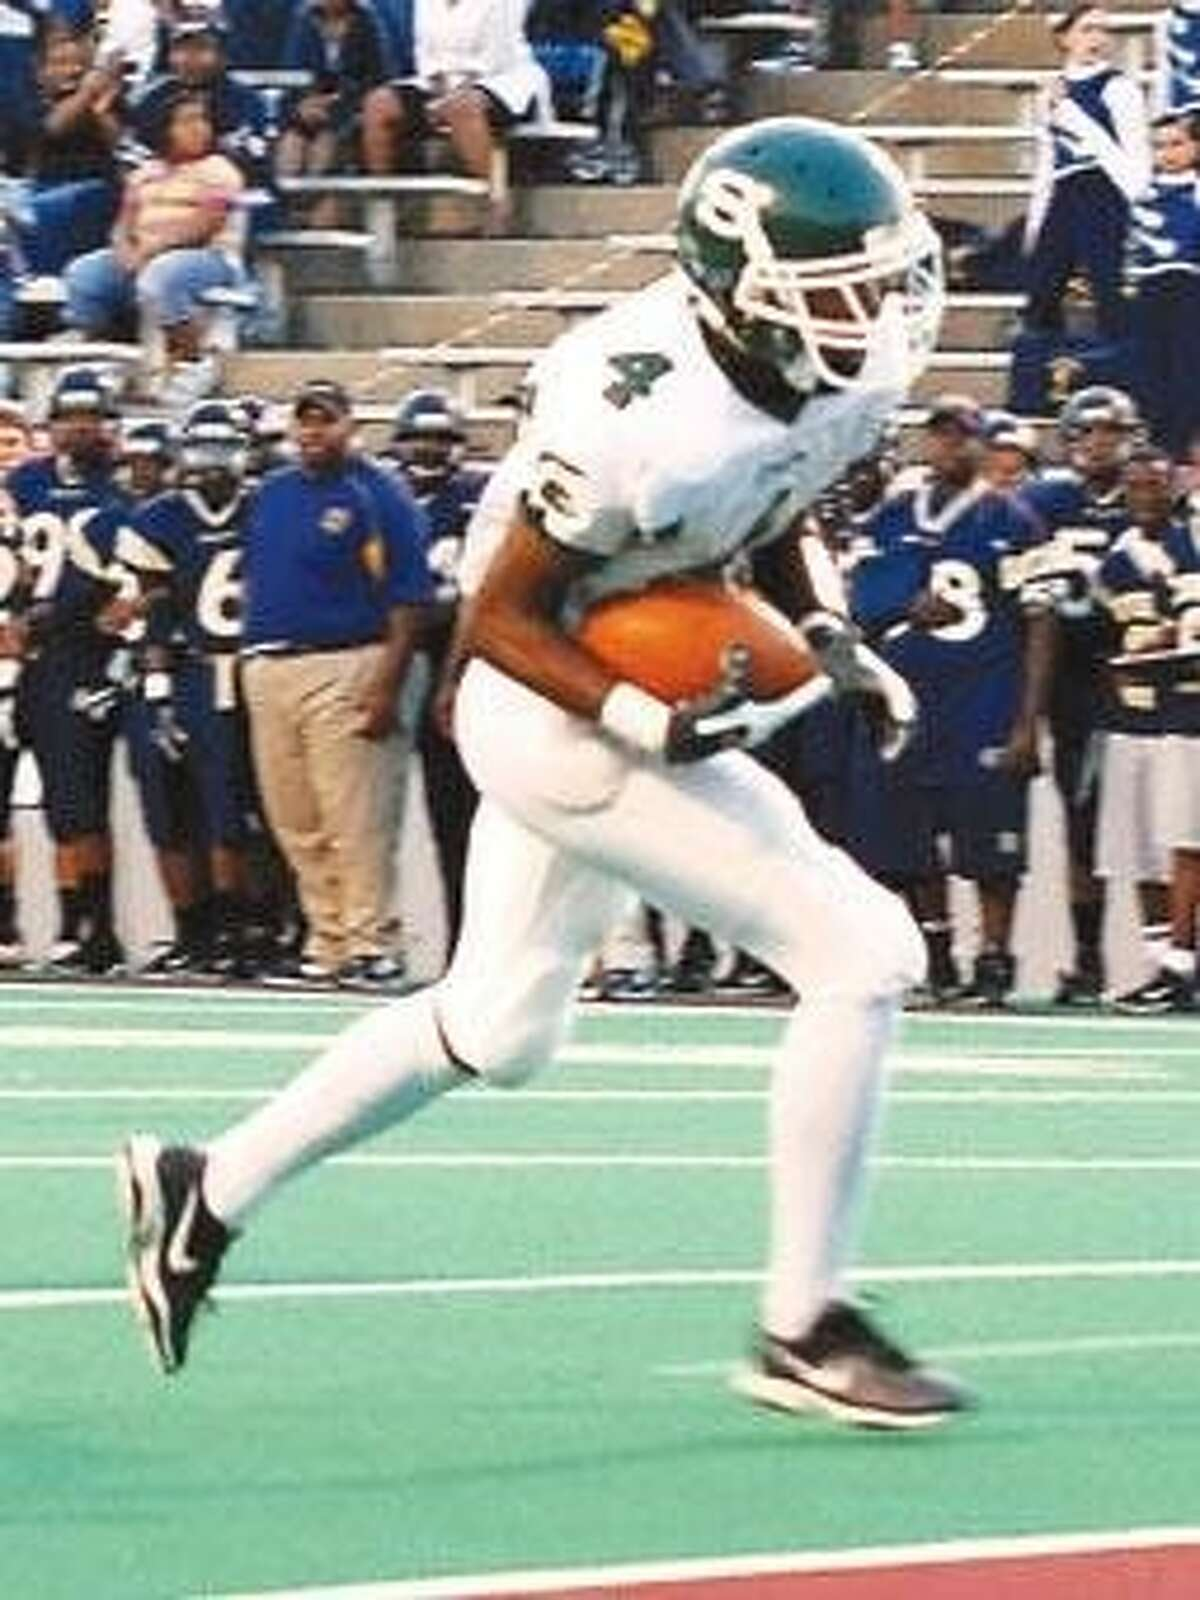 B.J. Griffin helped the Stratford football team win a district championship and an area championship before graduating in 2008.